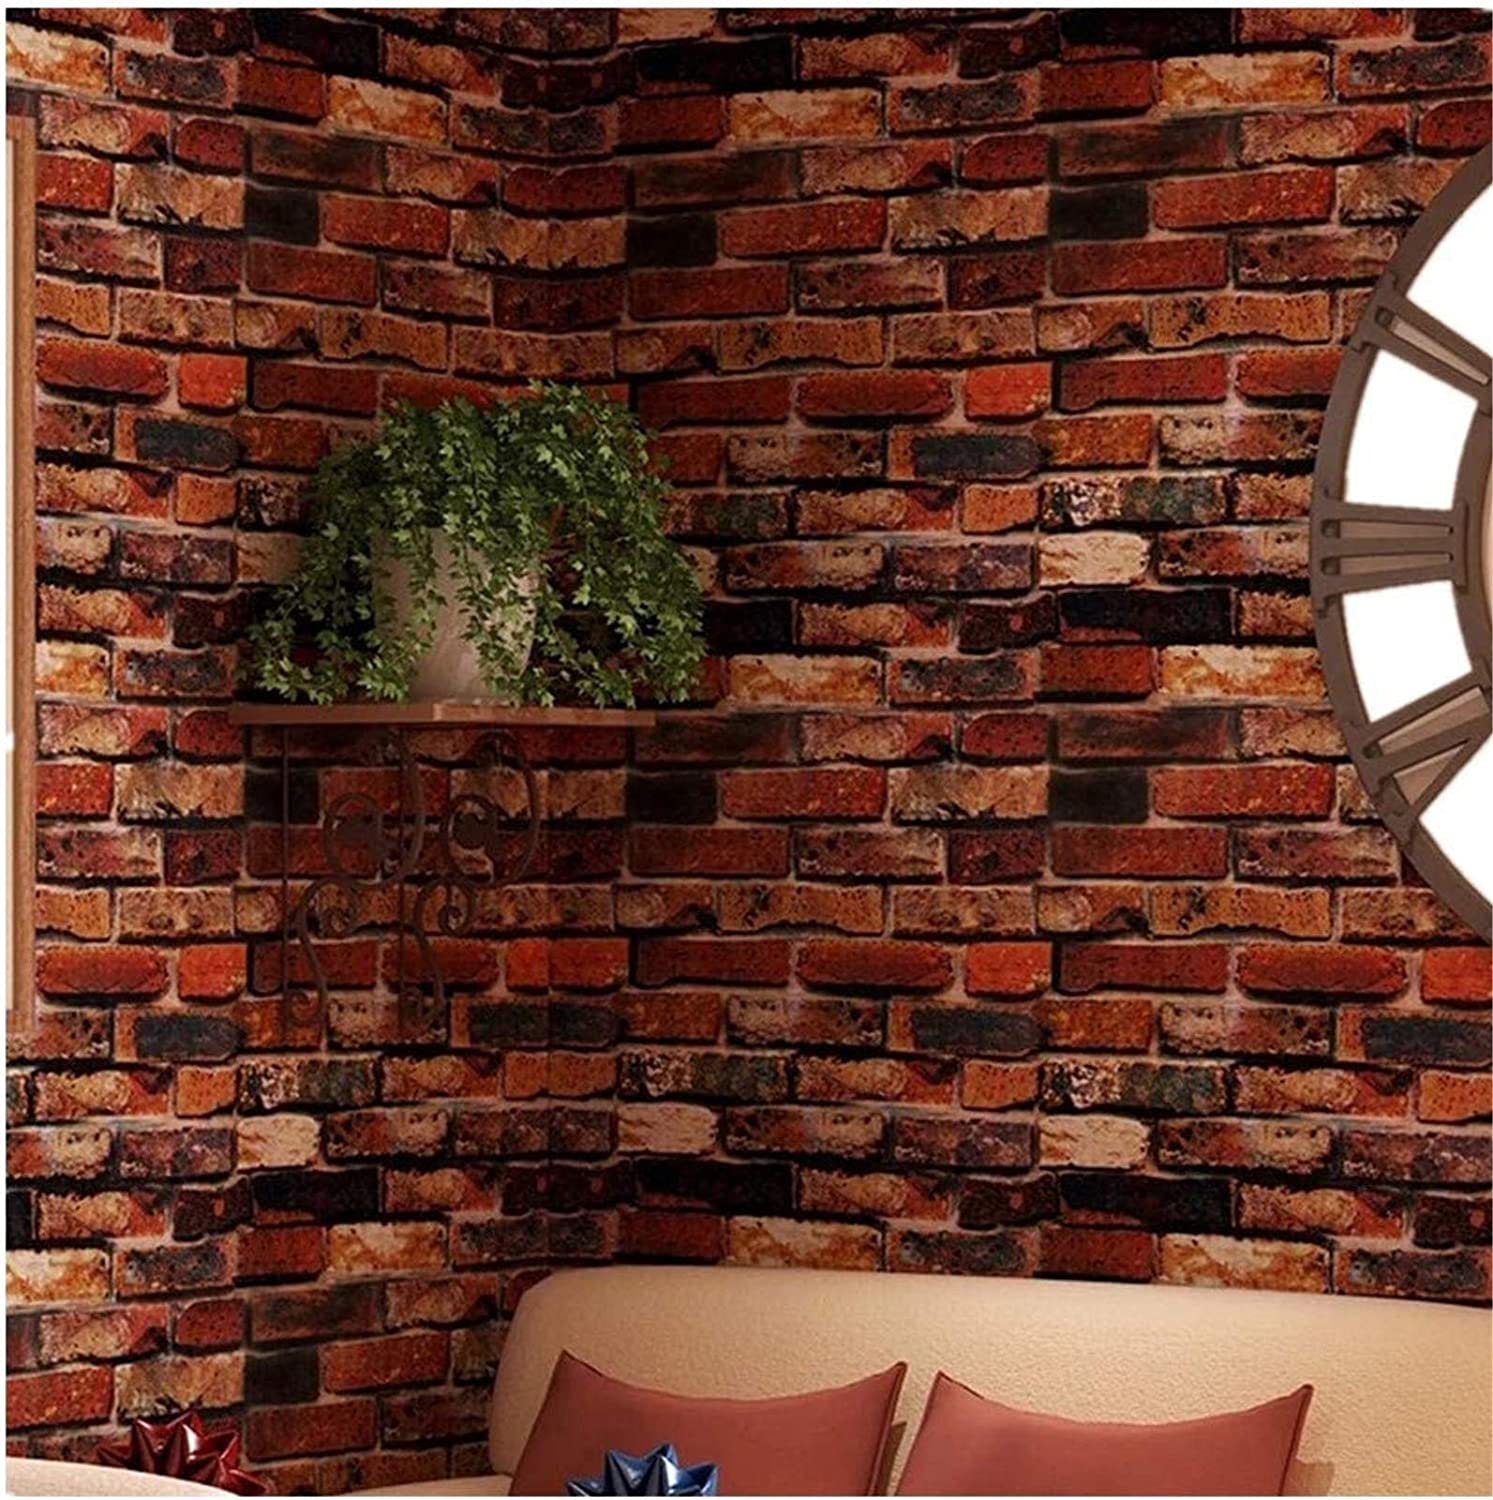 """Yancorp Self-Adhesive Wallpaper Rust Red Brown Brick Paper Fireplace Peel-Stick Wall Door Counter Top Liners (18""""x197, Rust Red Brick)"""